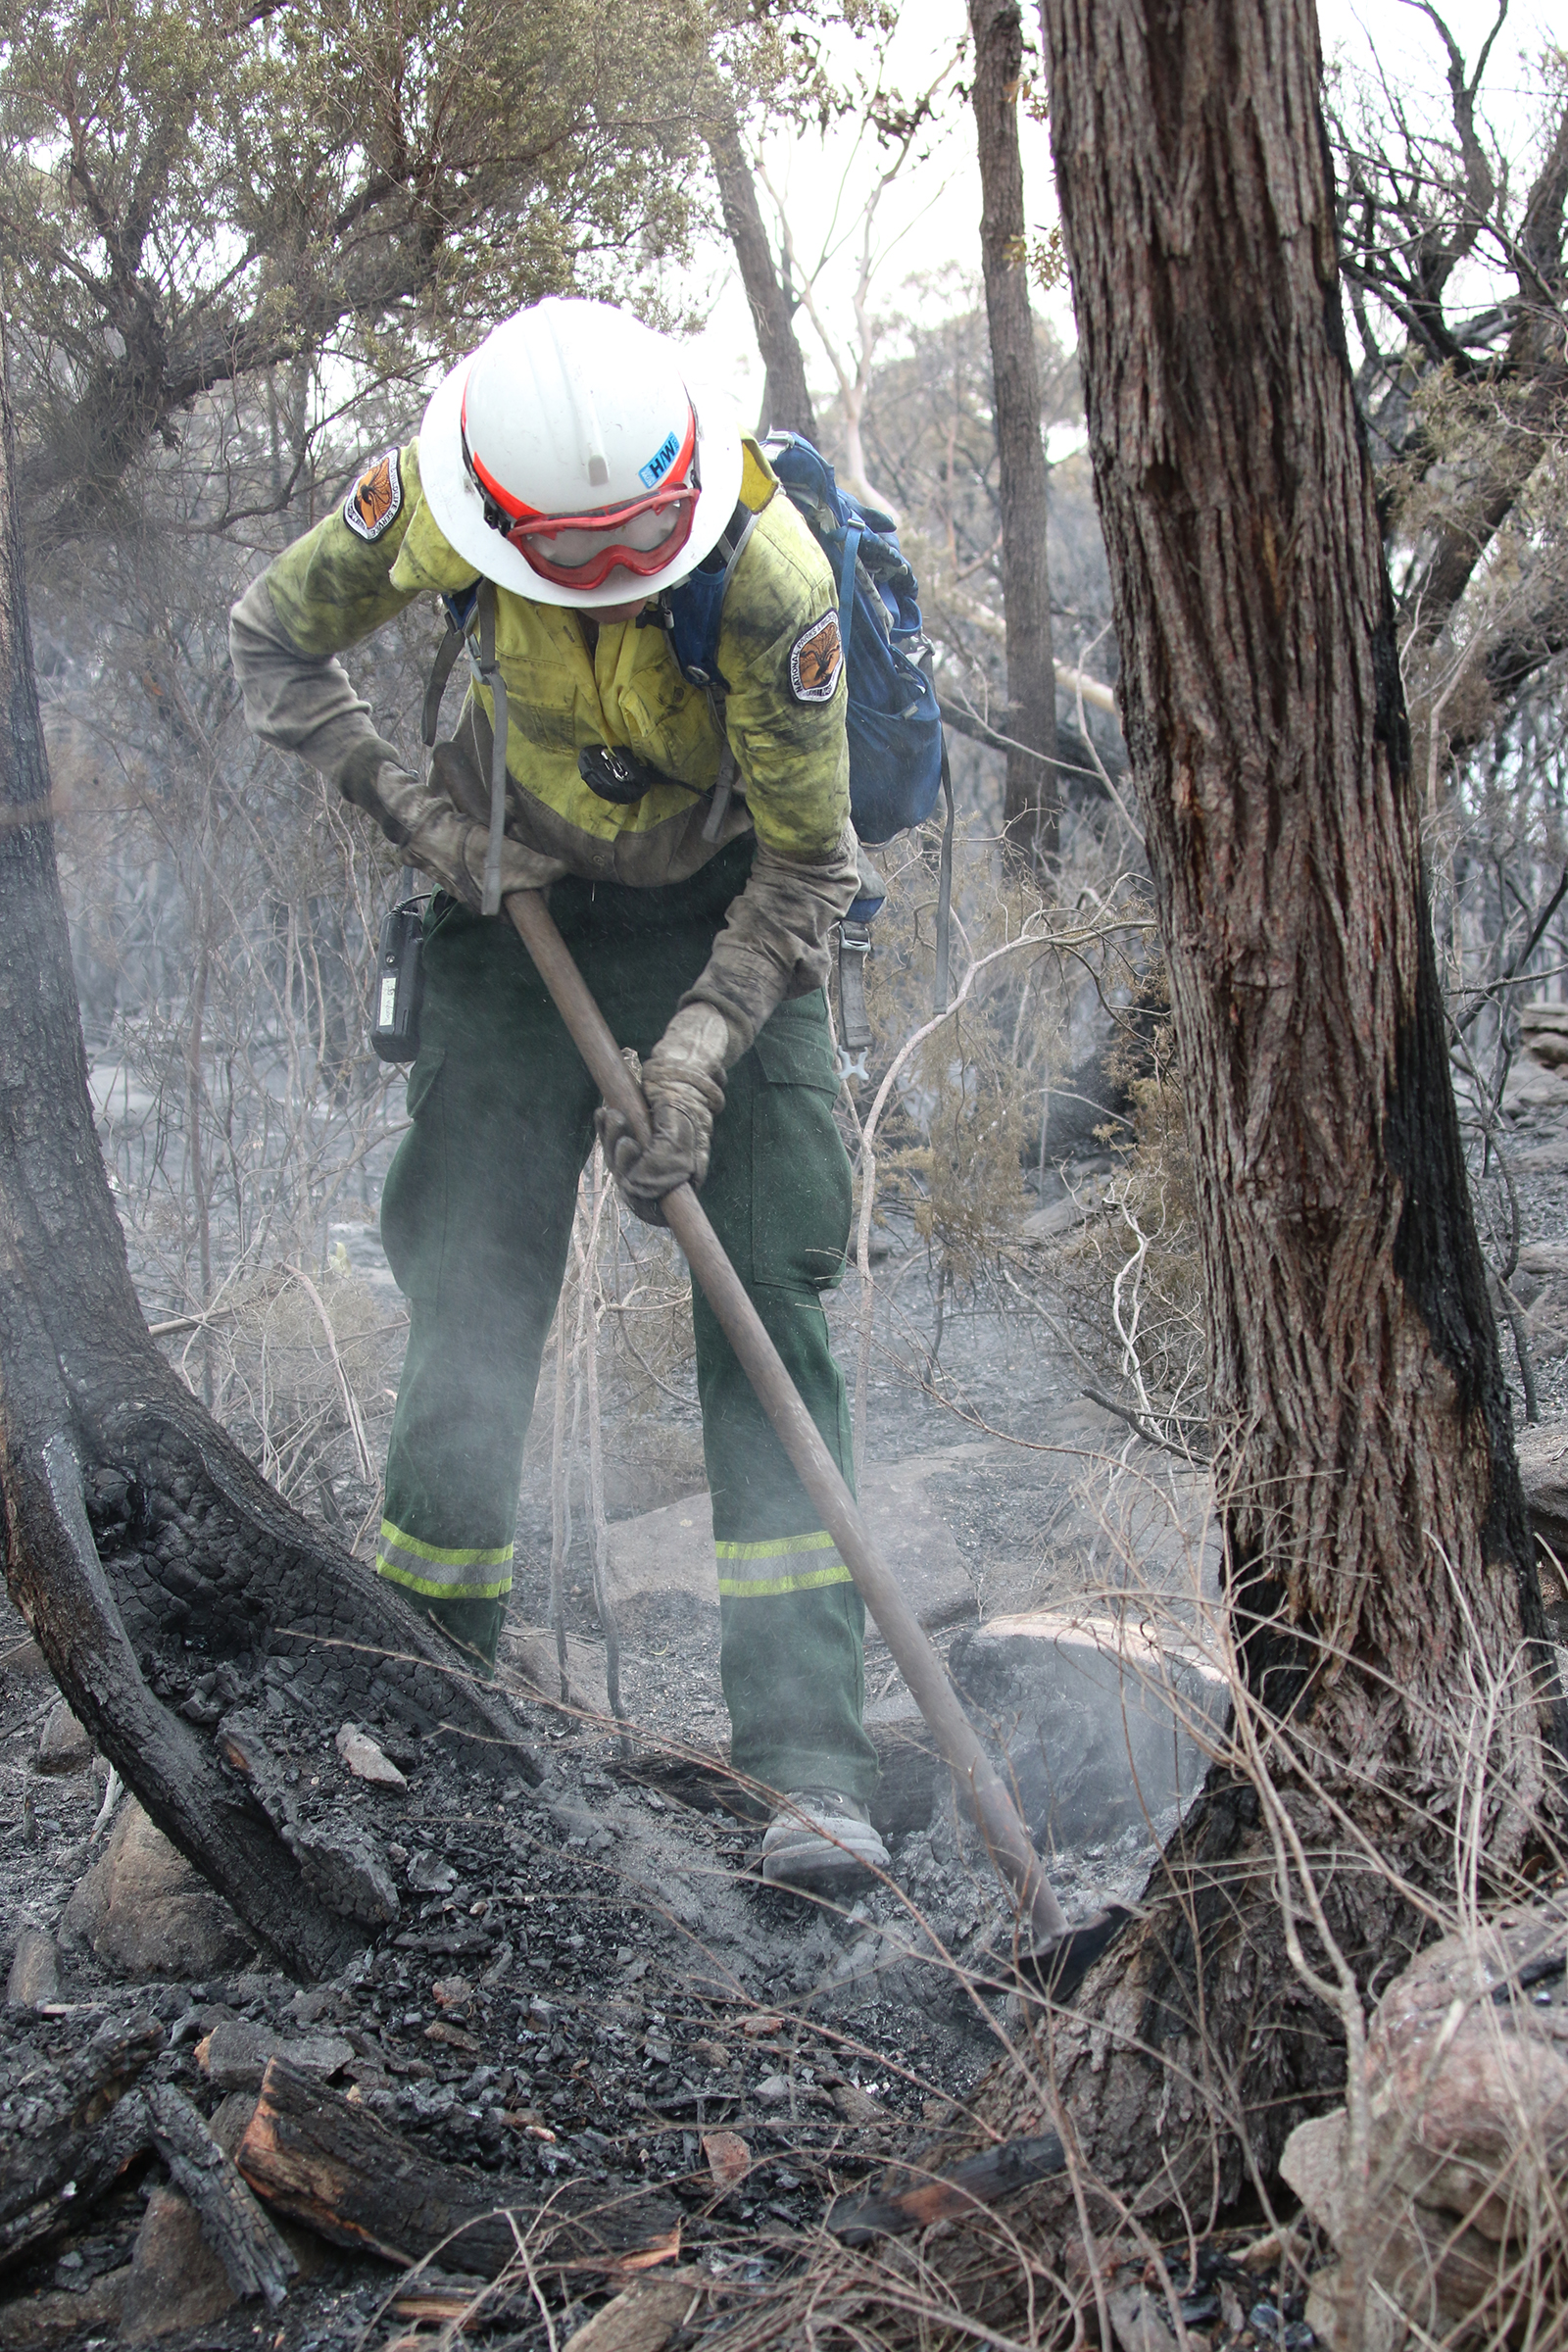 NPWS firefighter using a rake hoe. Photo: David Croft/OEH